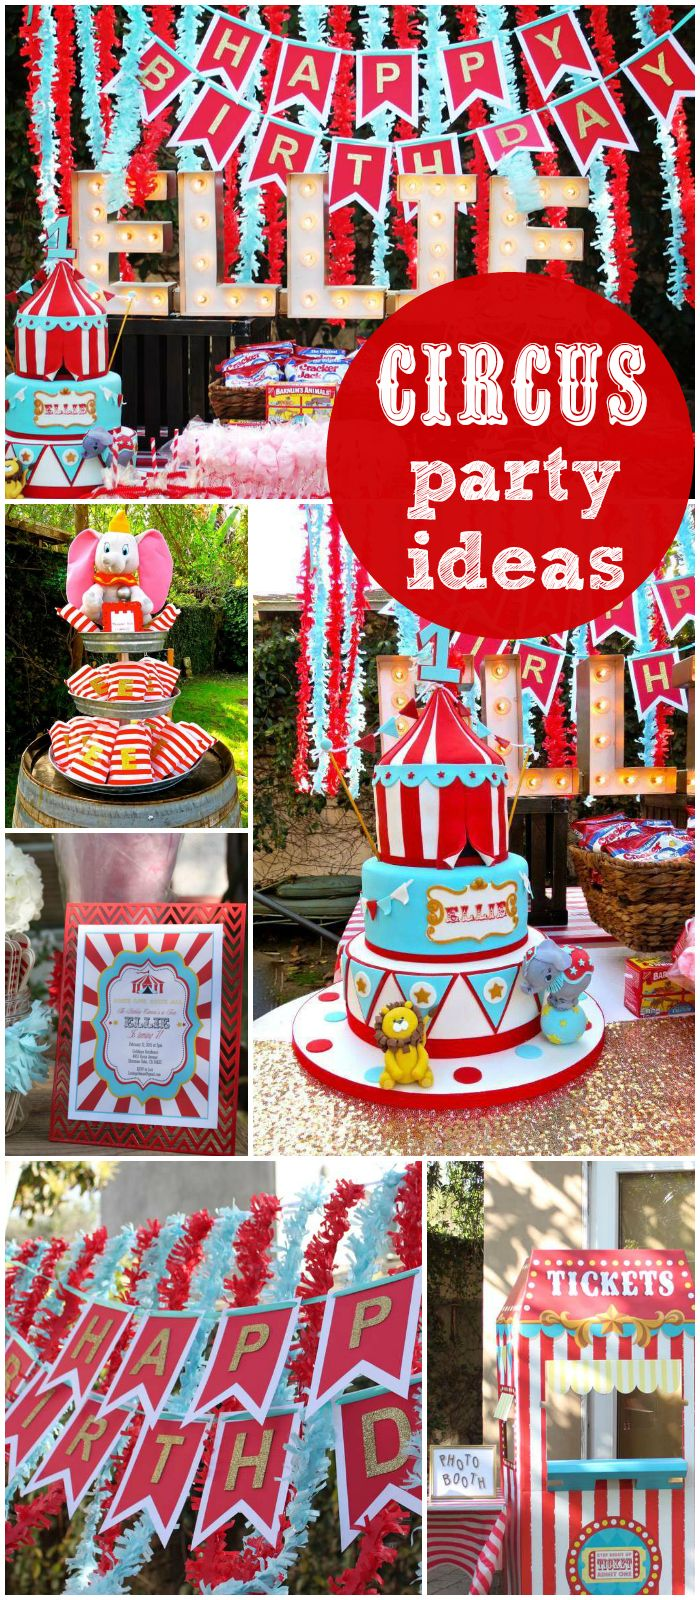 in conjunction him large for party size with ideas birthday themes her best of circus decorations decor